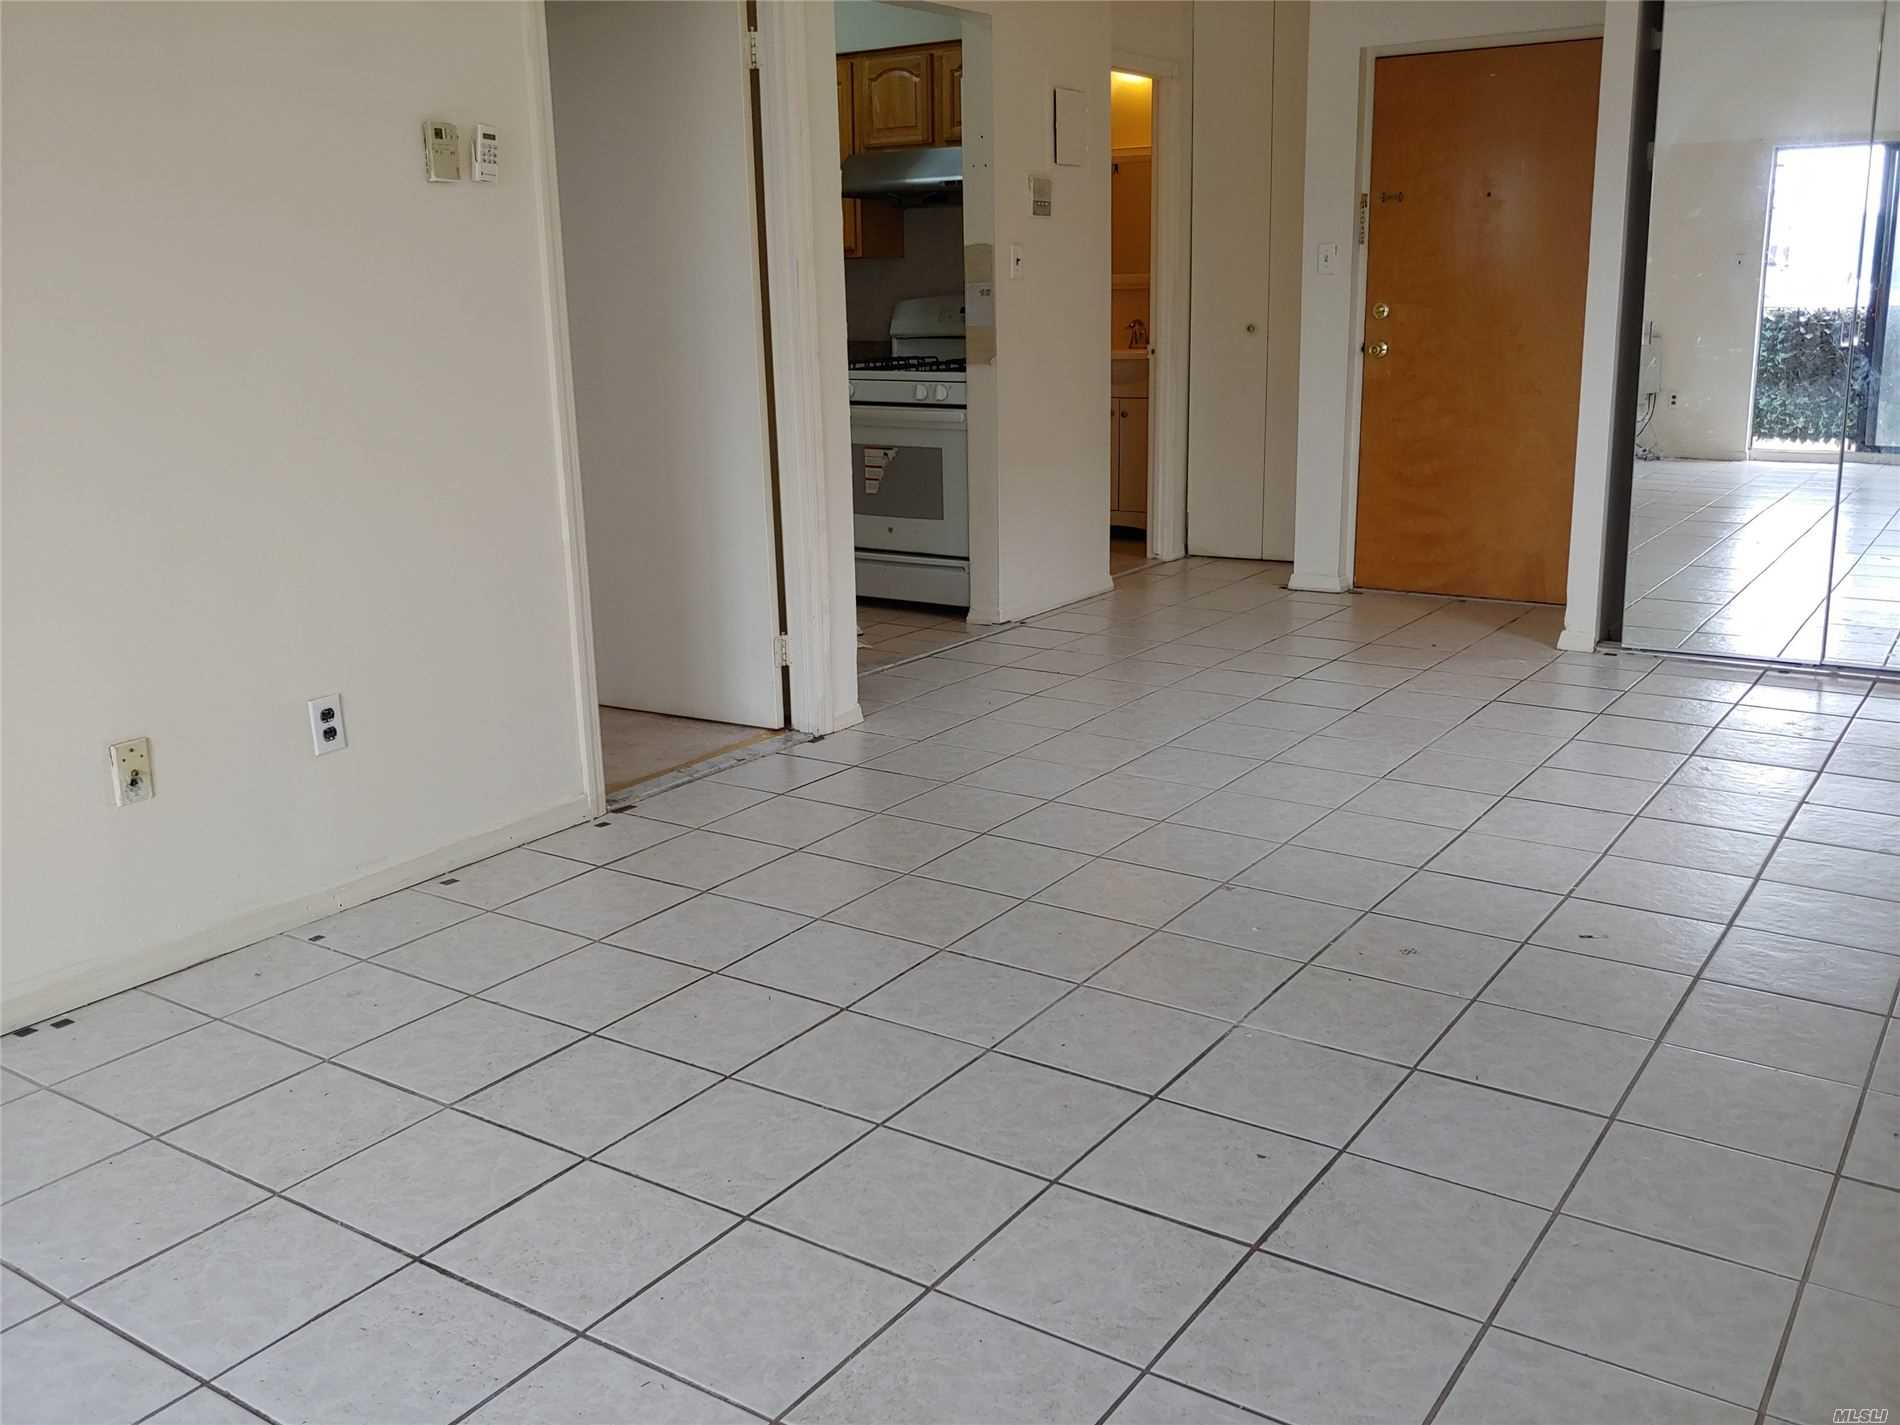 Near Douglaston Shopping Center, Townhouse Condo. Sunny Bright One Bedroom, Large Terrace has taking nice View, Private Laundry & Storage In Basement. Convenient to all...